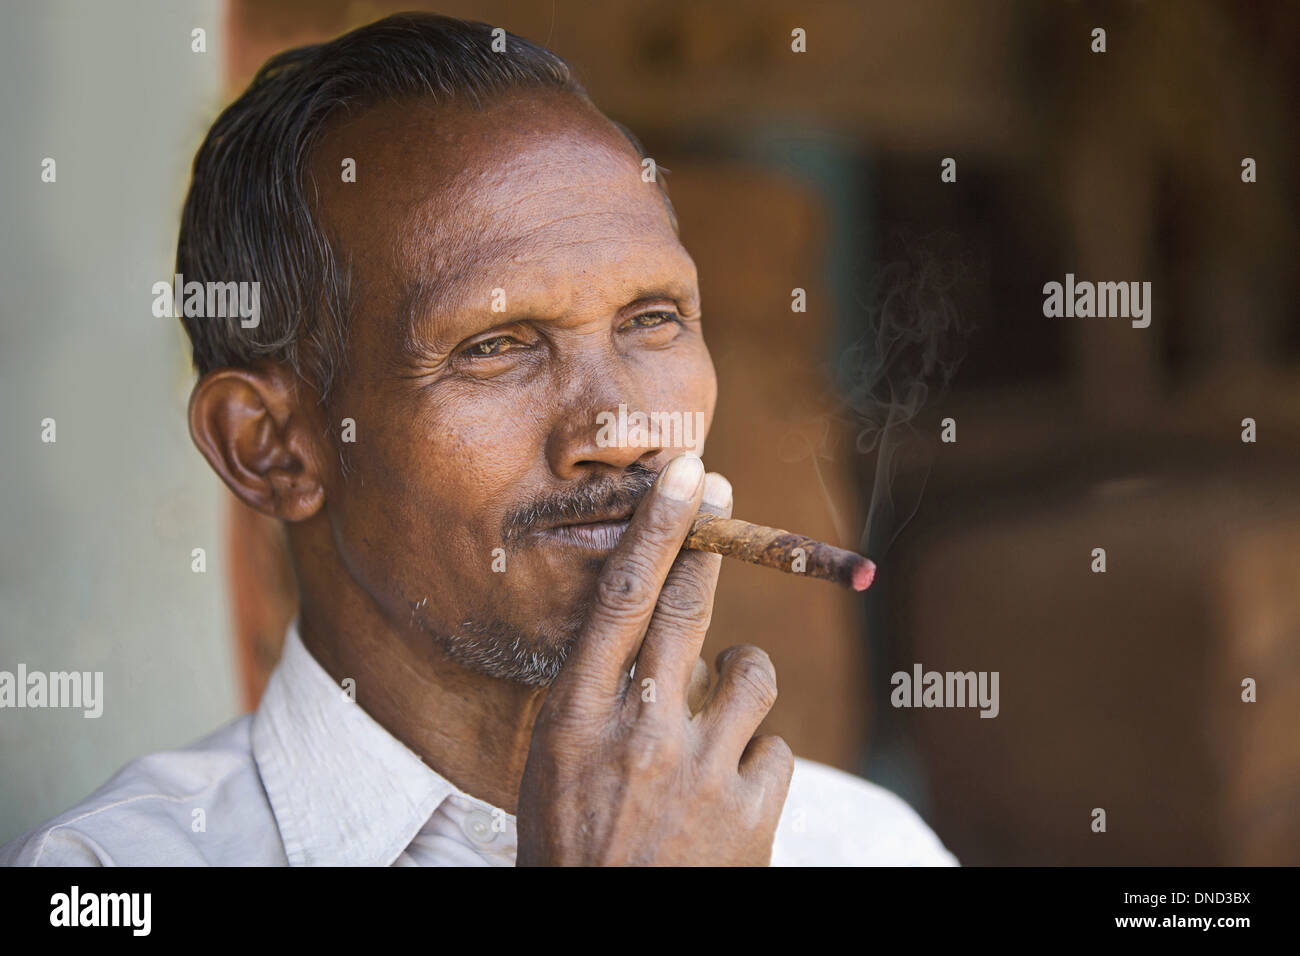 Close-up of a tribal man smoking bidi, an Indian handmade cigarette made of tobacco or beedi leaves, Orissa, India - Stock Image